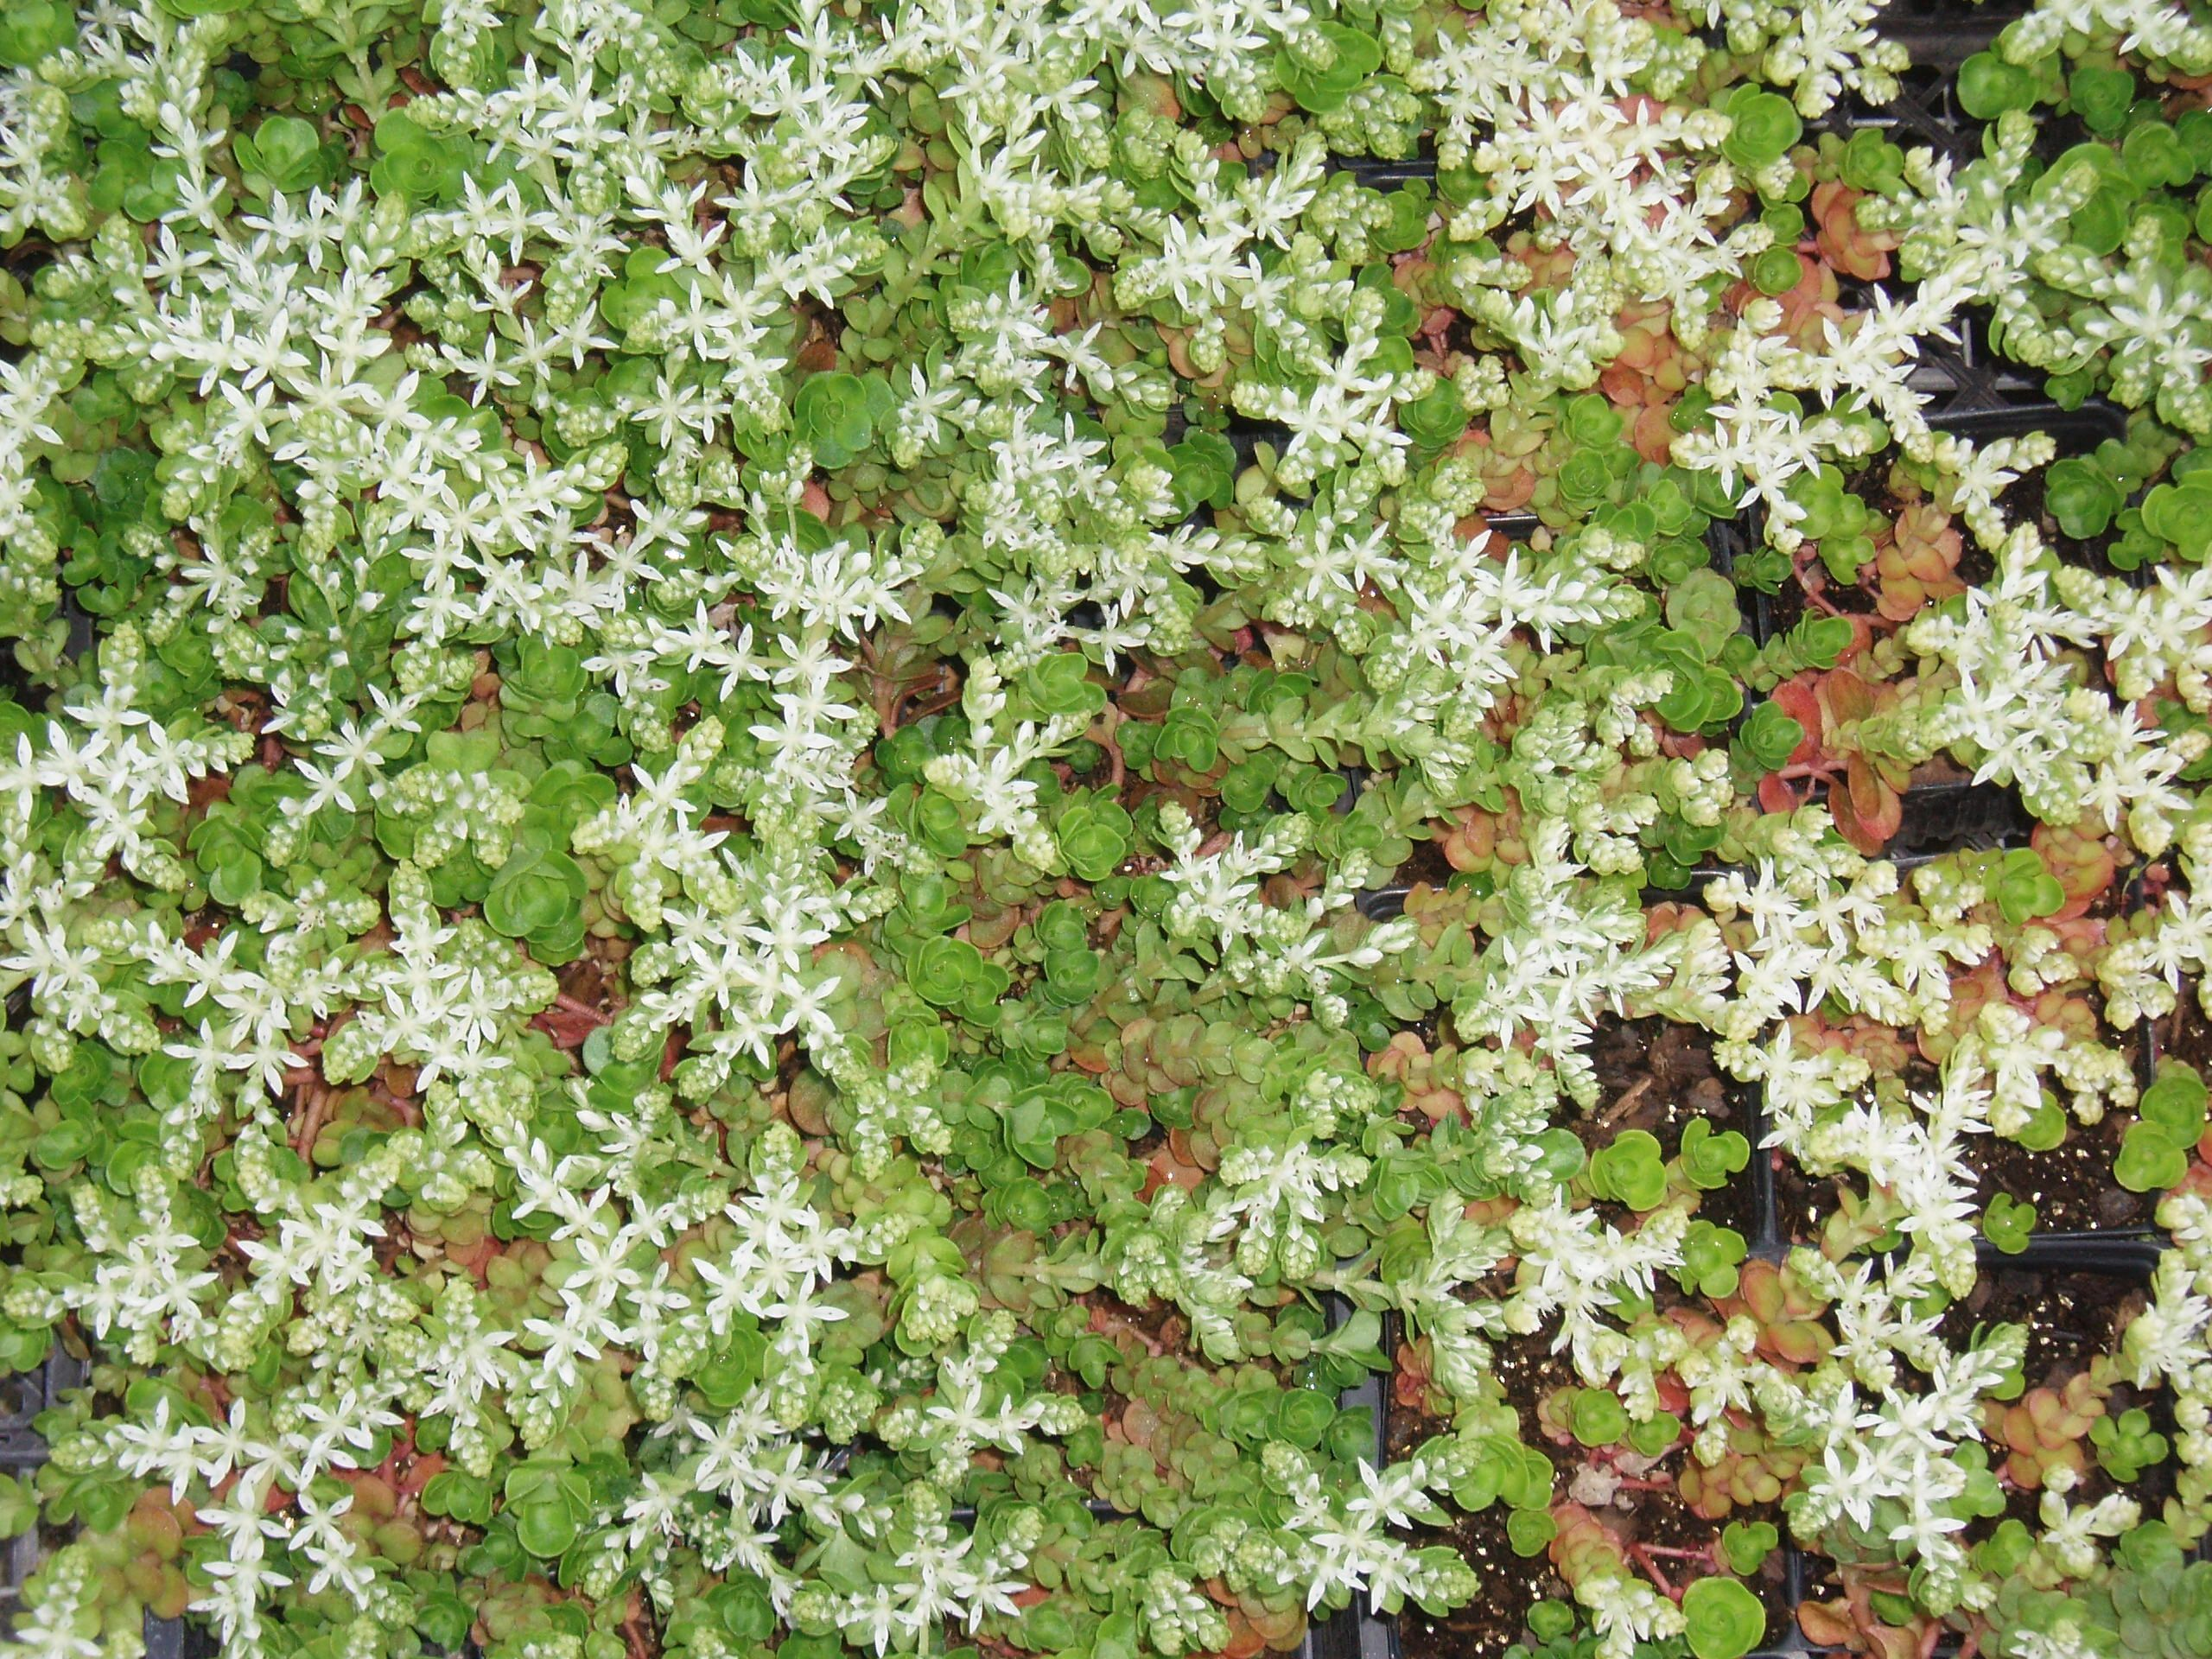 "{""blocks"":[{""key"":""4841i"",""text"":"" Sedum ternatum Woodland Stonecrop, widow's cross - potted plants email john@easywildflowers.com"",""type"":""unstyled"",""depth"":0,""inlineStyleRanges"":[],""entityRanges"":[],""data"":{}}],""entityMap"":{}}"